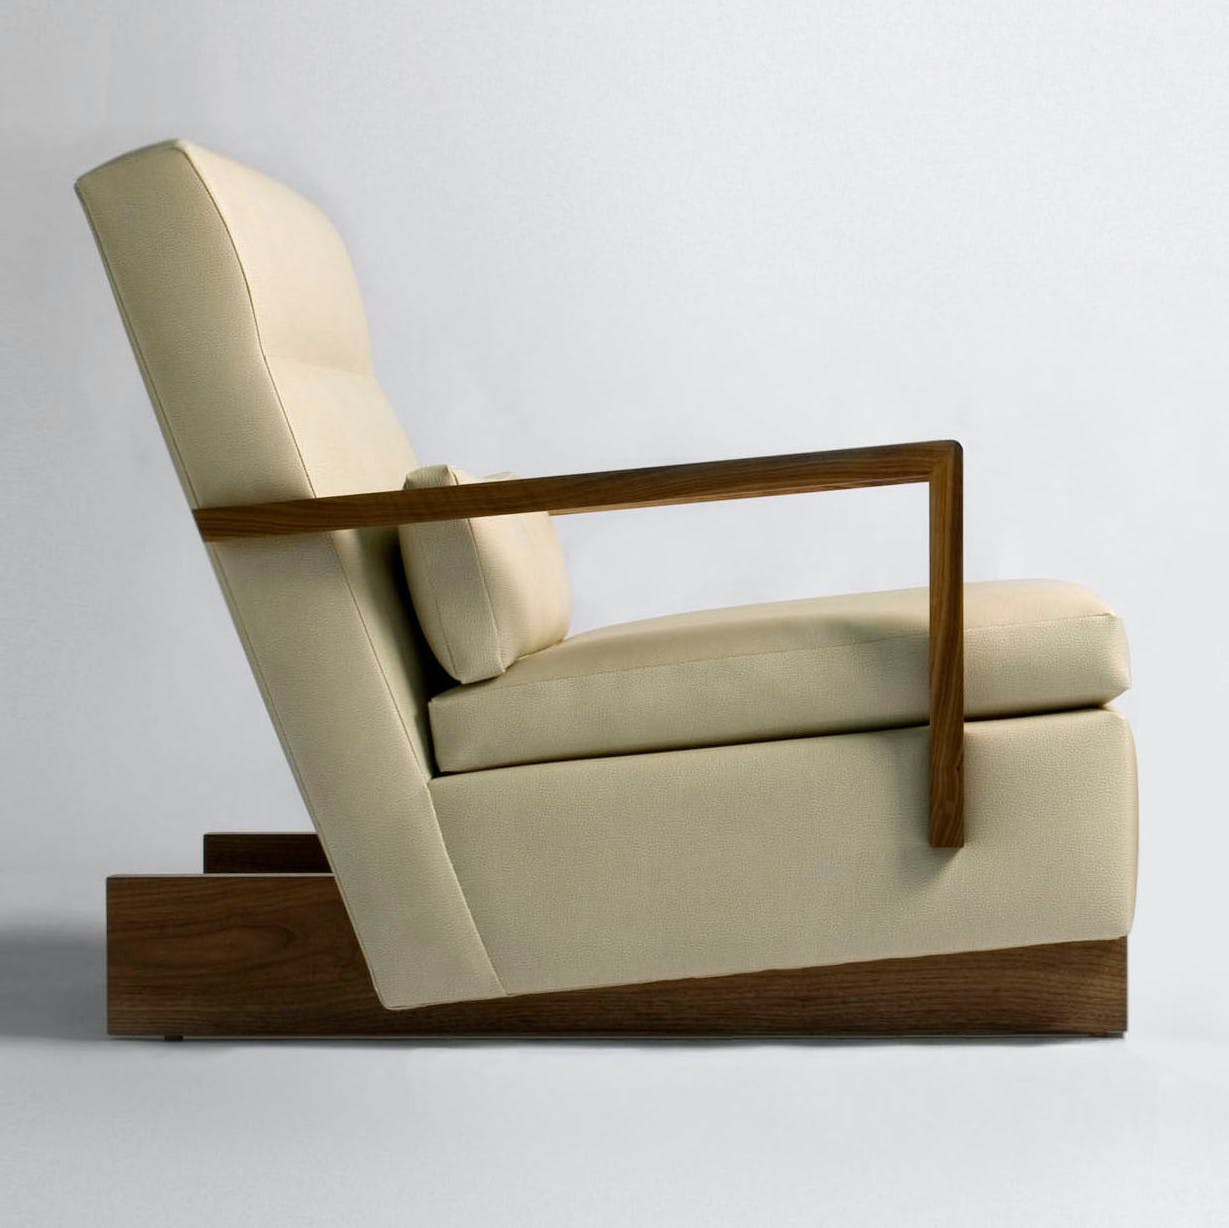 Phase Design Trax Lounge Chair Side Haute Living